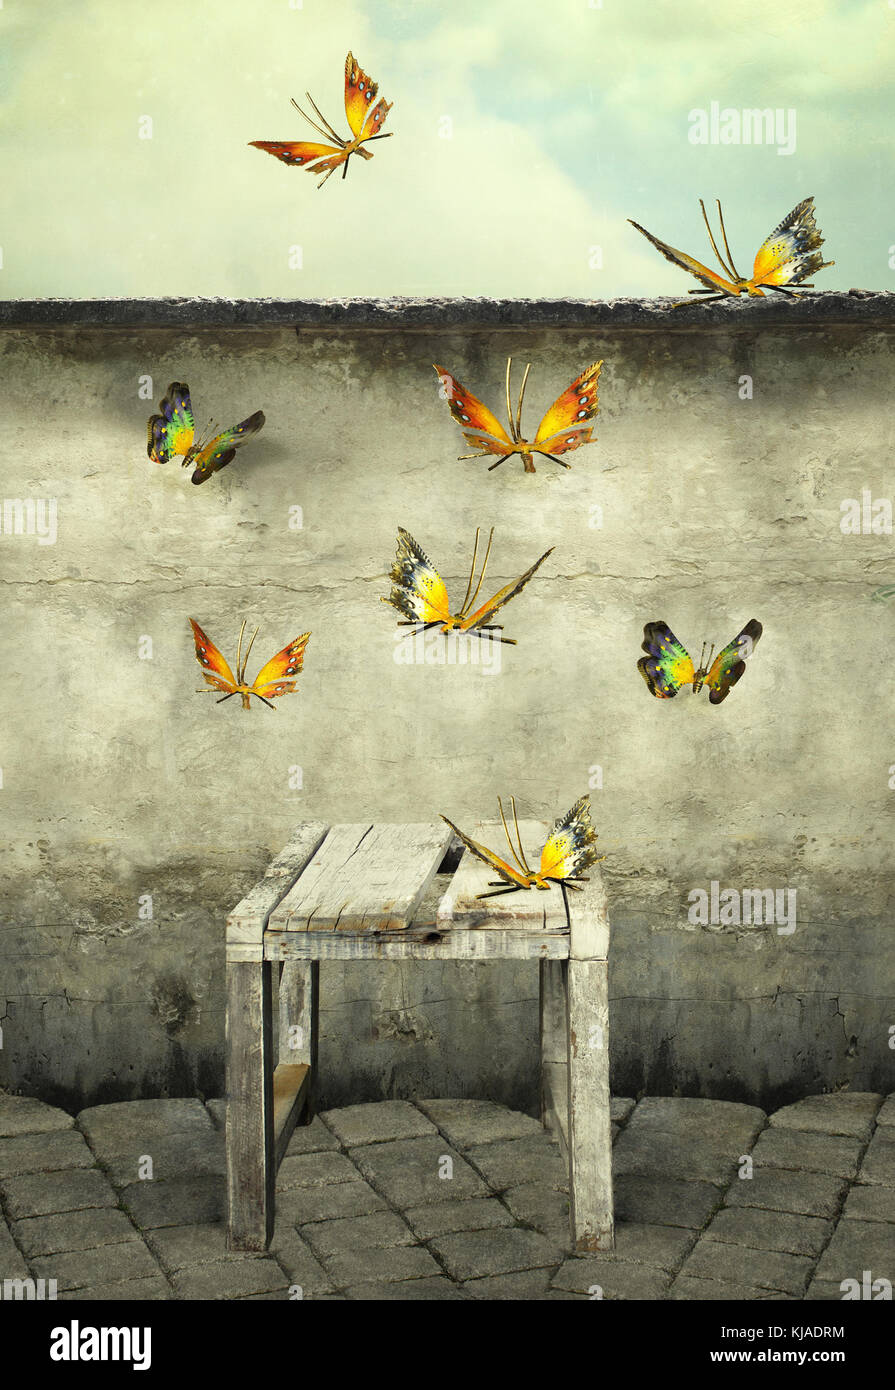 Many colorful butterflies flying into the sky with a peeling wall and a bench, illustrative photo and artistic - Stock Image